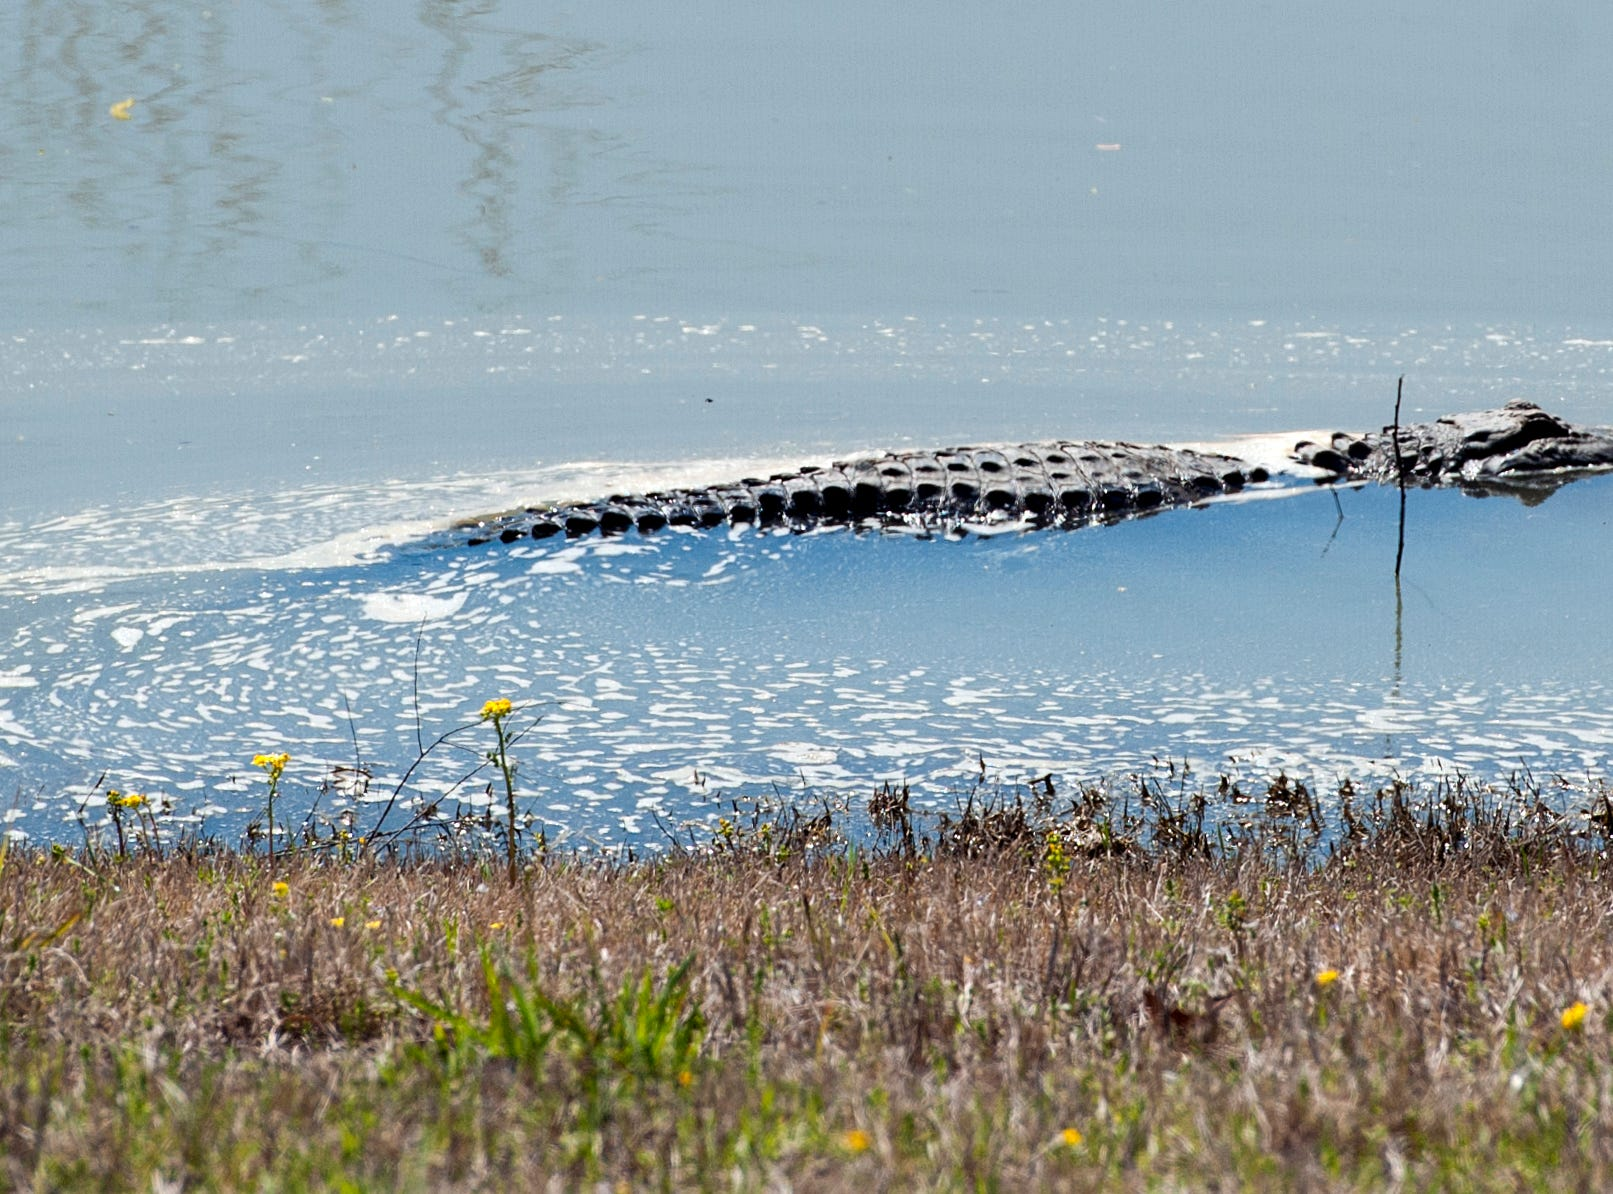 Startled by a passing vehicle, an alligator moves into the water after sunning himself in the grass along the waters edge at the levee heading to Eagle Lake. As flood levels rise, alligators follow the water's edge.